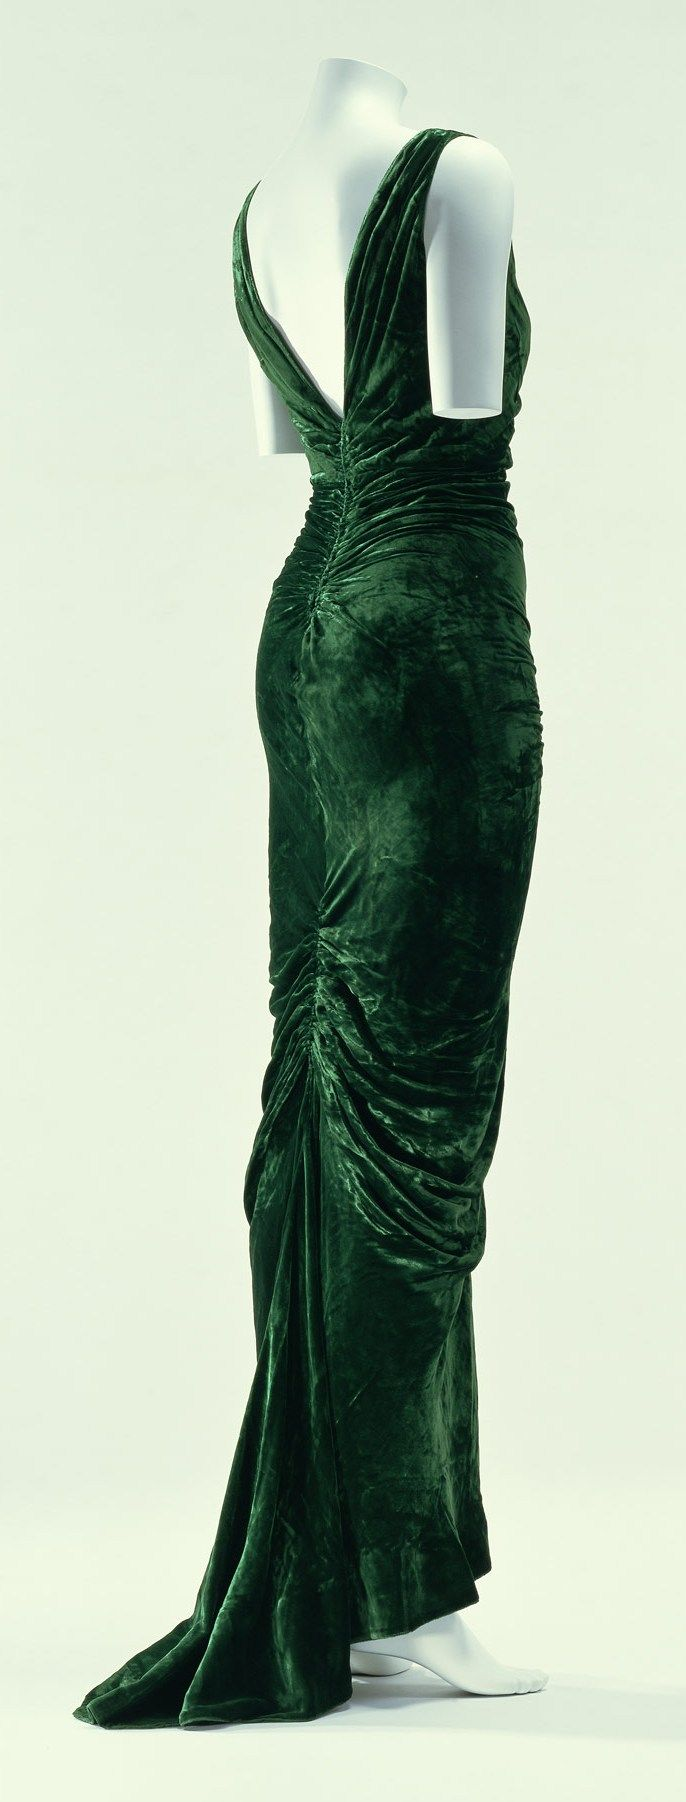 """Evening Dress, Edward Molyneux: autumn/winter 1935, bias-cut velvet. """"This work in the popular mermaid line style of the 1930s, is the triumph of Molyneux's golden age. The bias-cut fabric encases the body closely, and the gathers at the seams create a beautiful drape.  In the 1930s, styles exposing feminine curves returned to fashion. Hair, which was short in the 1920s, became longer again, and previously knee-length skirts became ankle-length..."""""""